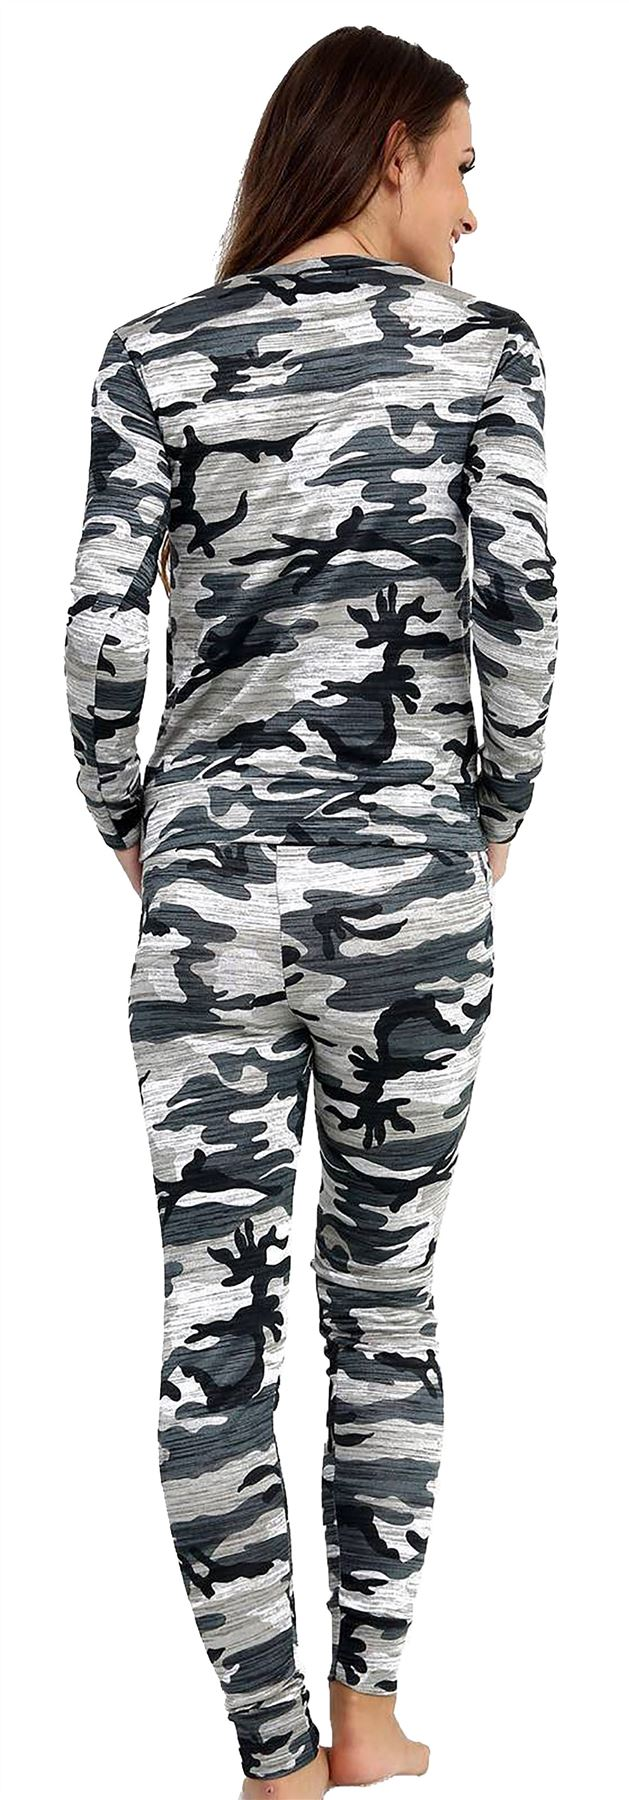 ecb1f9d8be7 Womens Camouflage Leopard Print Loungewear Army Tracksuit Ladies ...